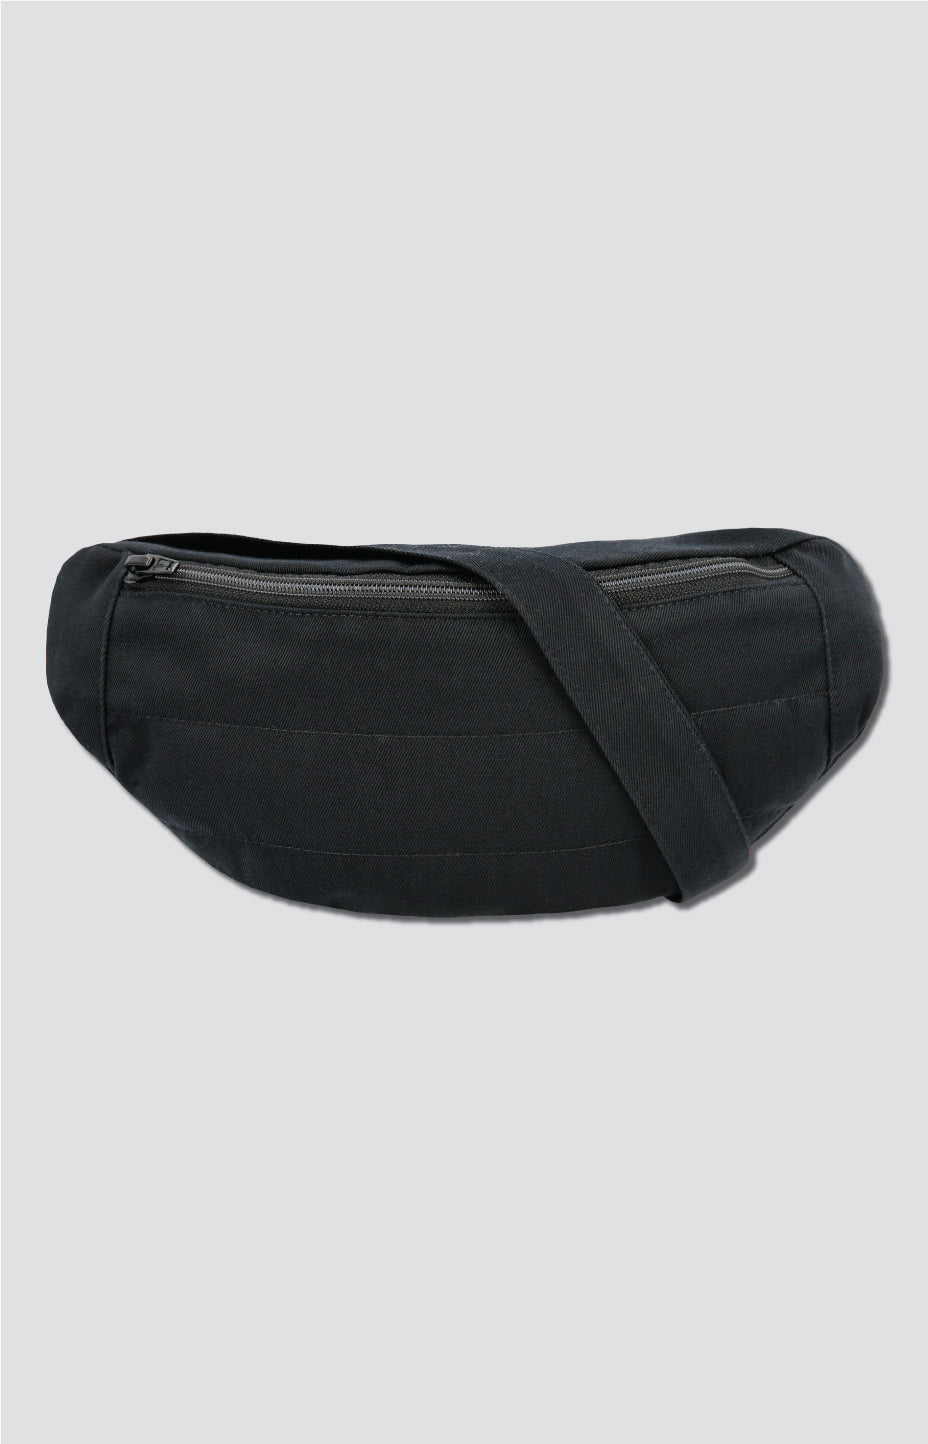 Ring belt bag coal black